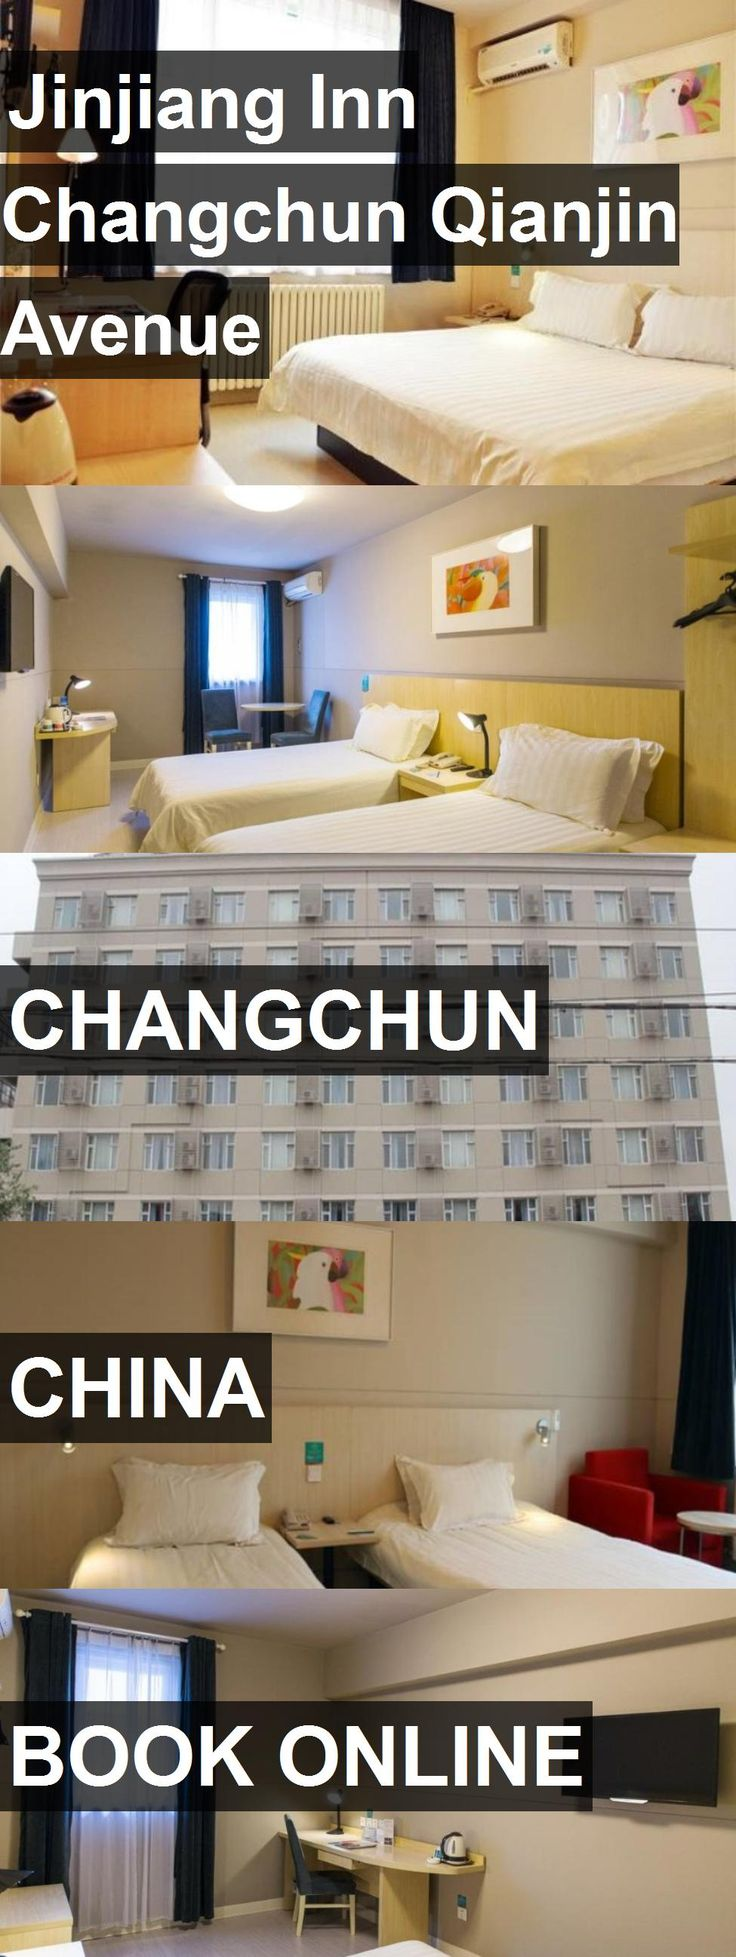 Hotel Jinjiang Inn Changchun Qianjin Avenue in Changchun, China. For more information, photos, reviews and best prices please follow the link. #China #Changchun #travel #vacation #hotel